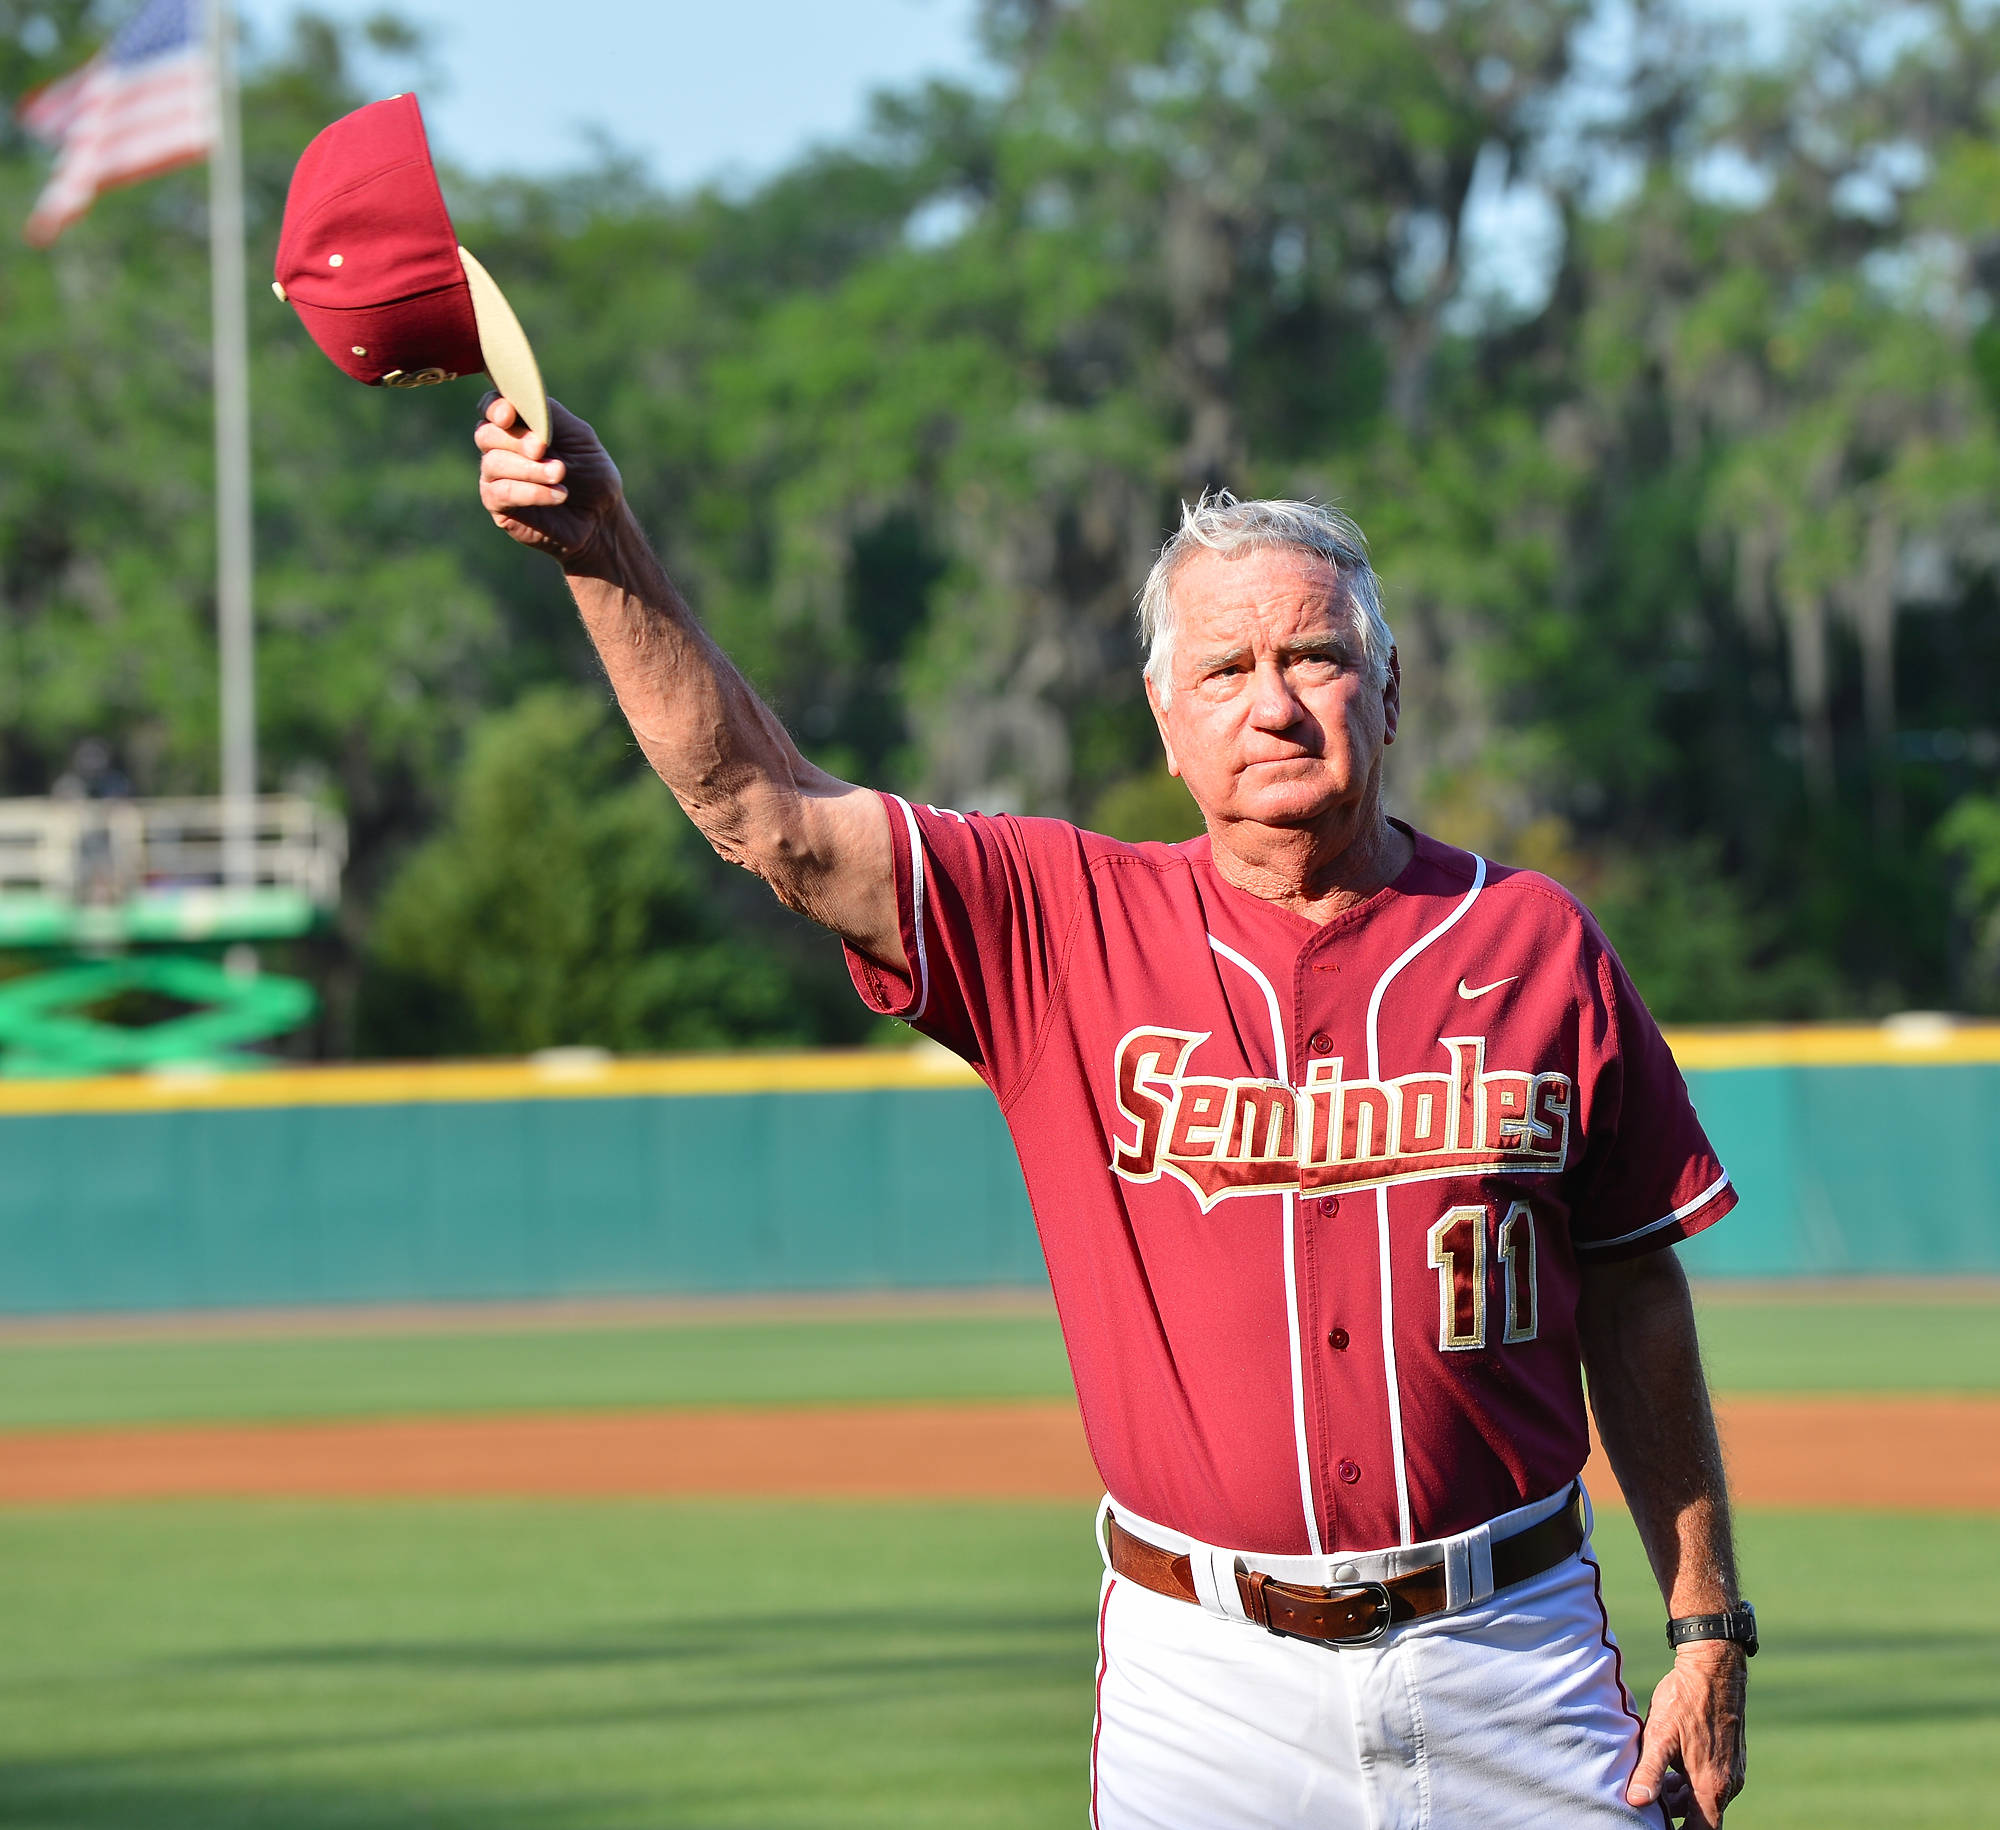 Head coach Mike Martin was recognized before the start of Tuesday's game for earning career win No. 1700 Sunday at Georgia Tech.